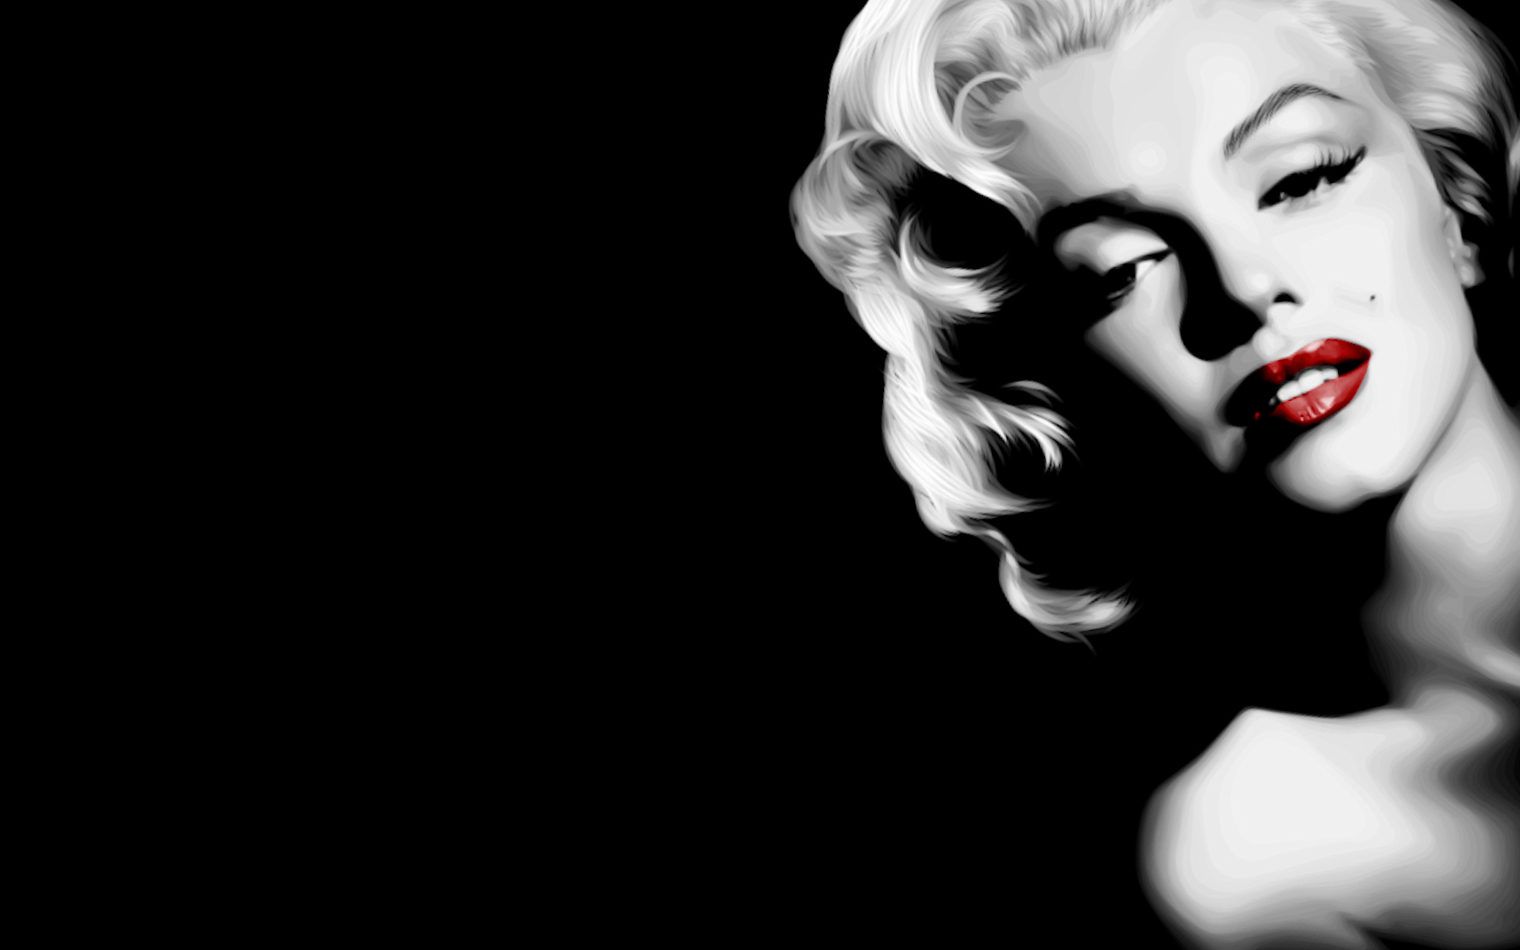 Marilyn Monroe Wallpaper, New iPad, Monroe, Marilyn (Misfits, The) 02 ...